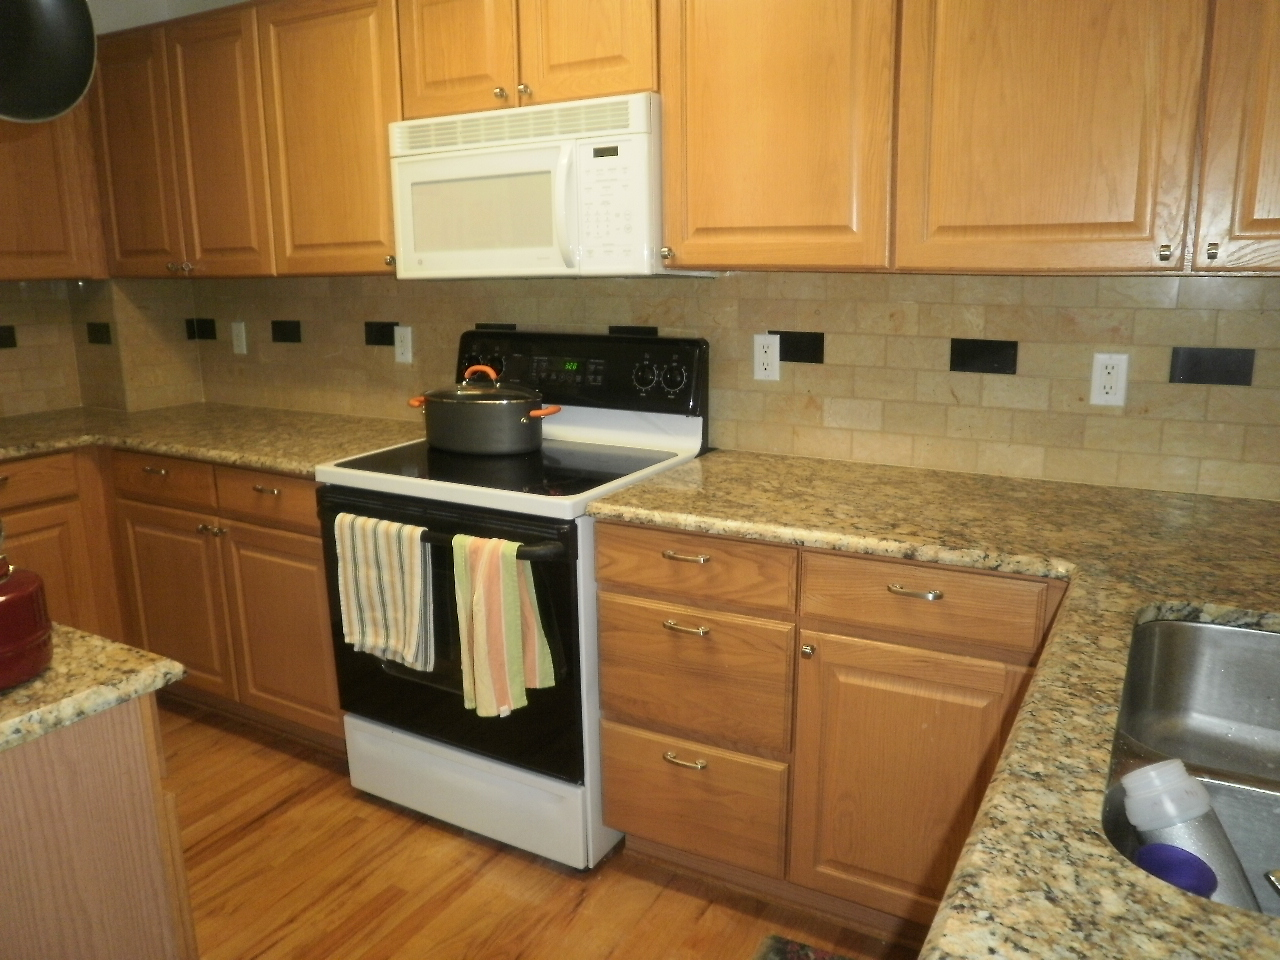 Oak Cabinets With Granite Countertops Pictures Integrity Installations A Division Of Front